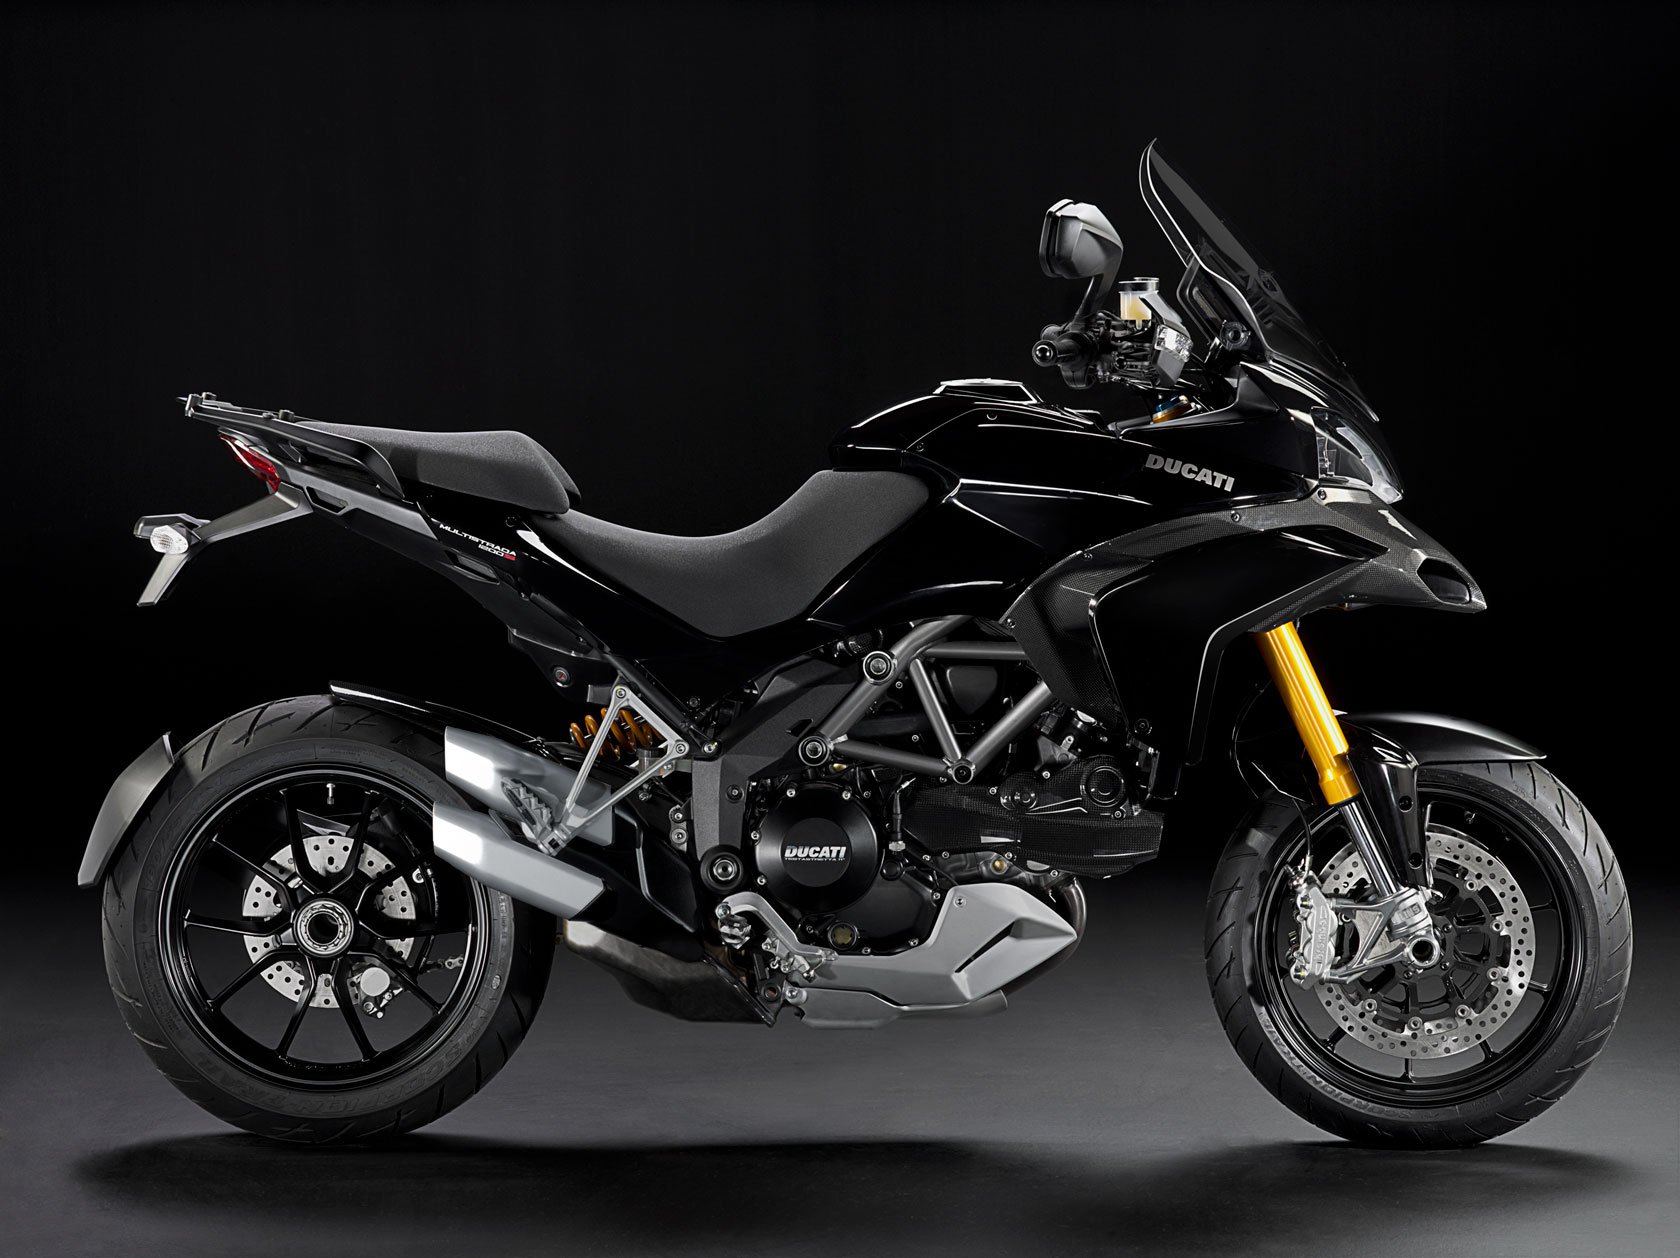 Ducati Multistrada 1200 S Sport 2011 wallpapers #12873